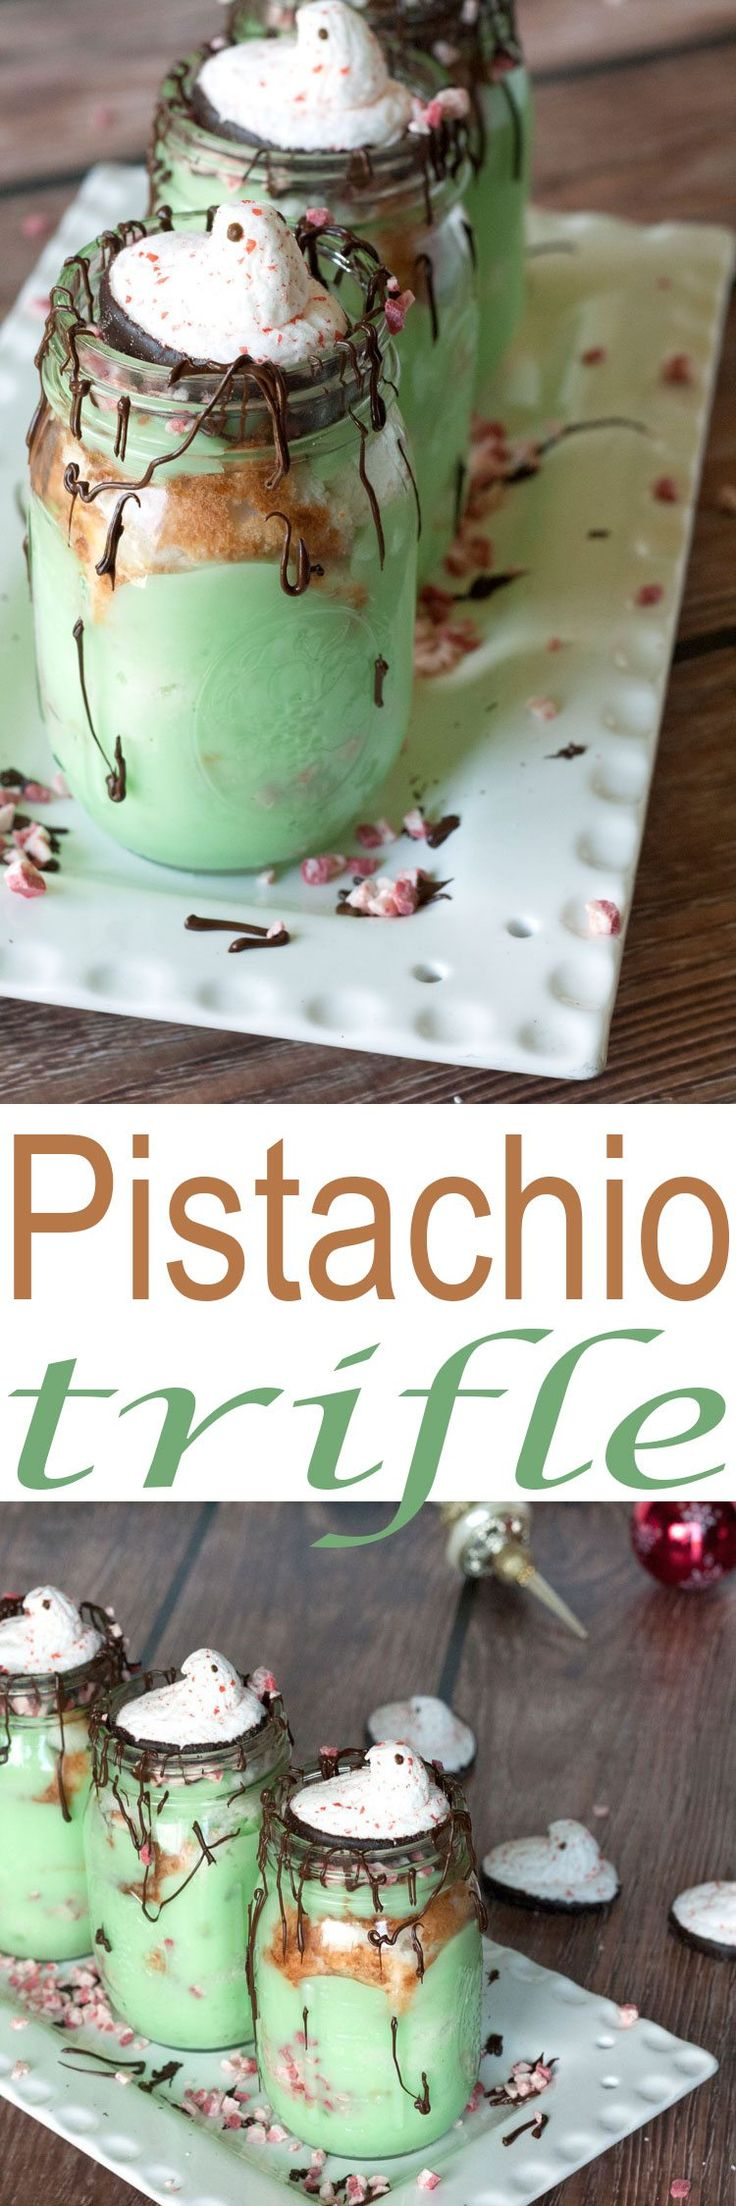 Best Holiday Trifle recipe. Our Pistachio Trifle is an easy dessert recipe and absolutely delicious! It is fun to make and a beautiful dessert.